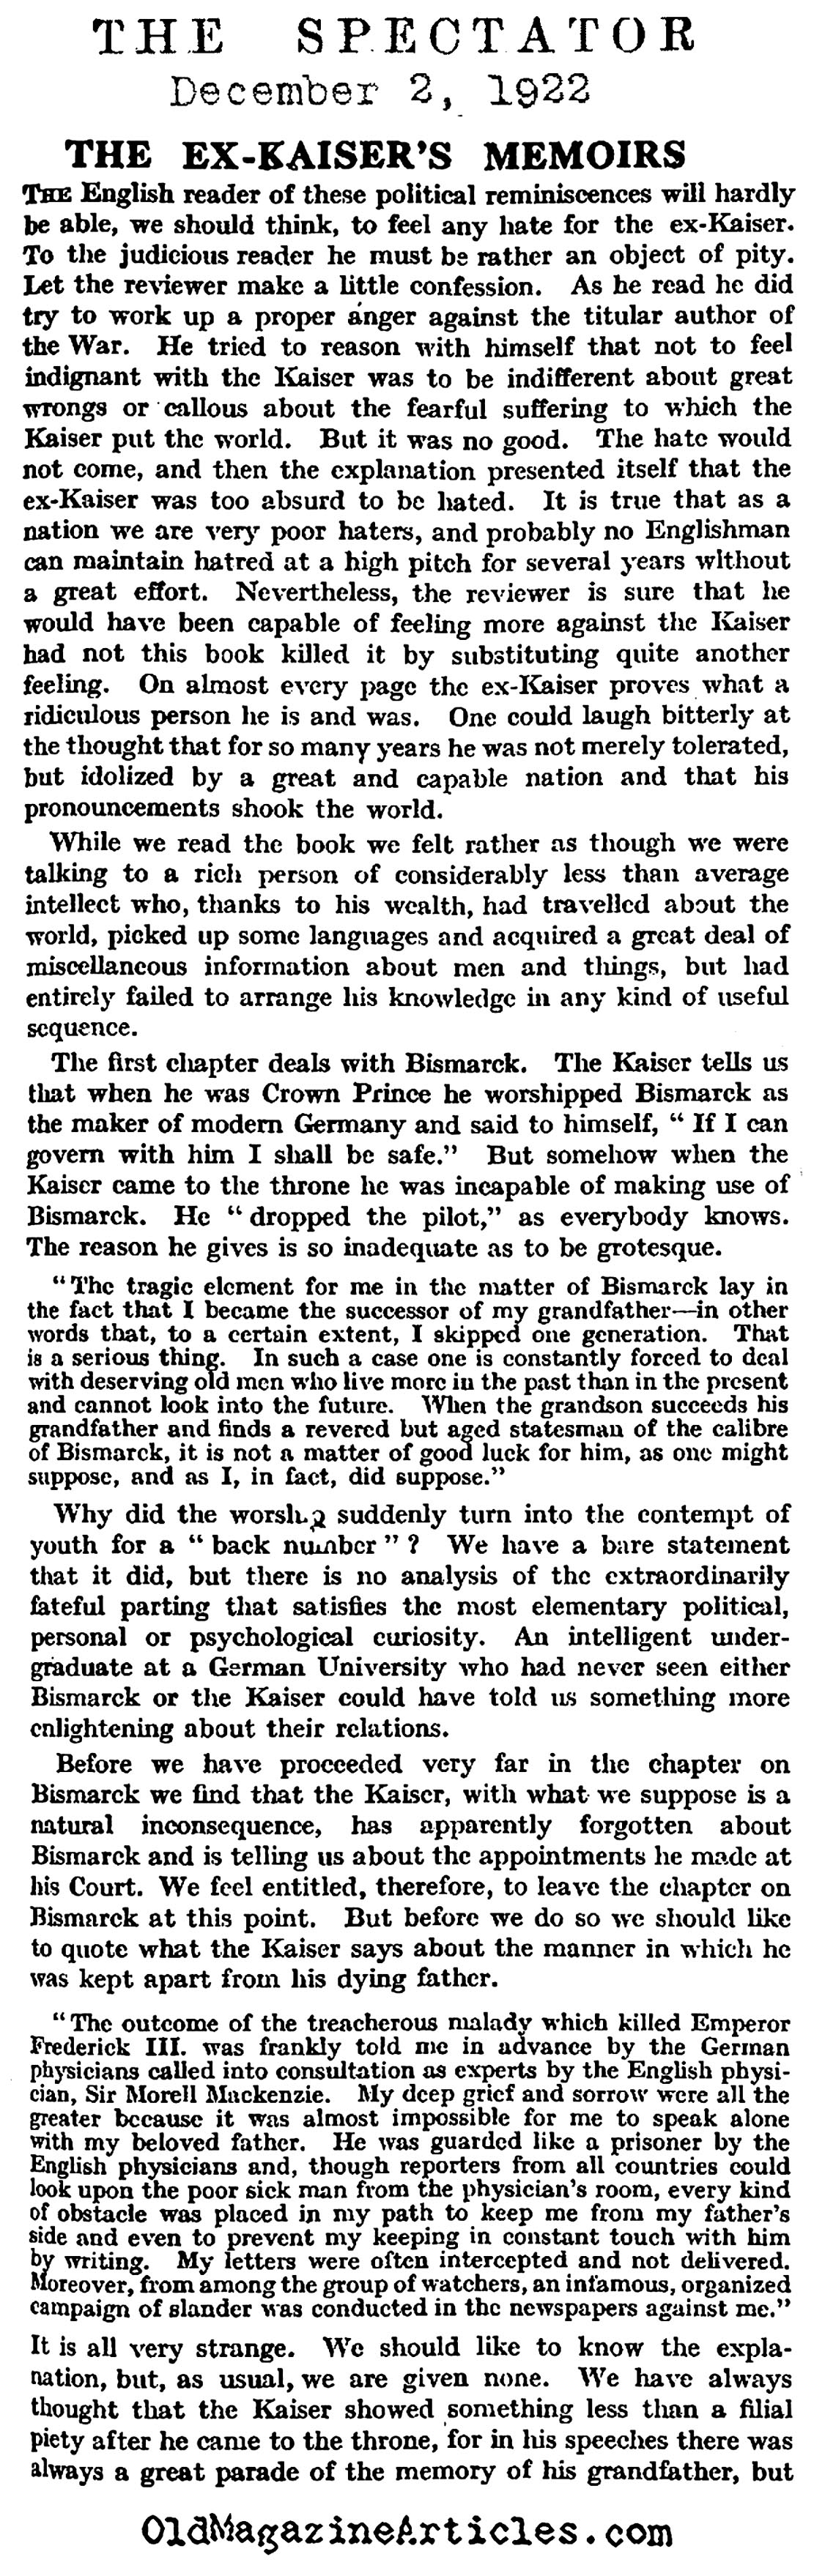 Review of Kaiser Welhelm's Memoir (The Spectator, 1922)